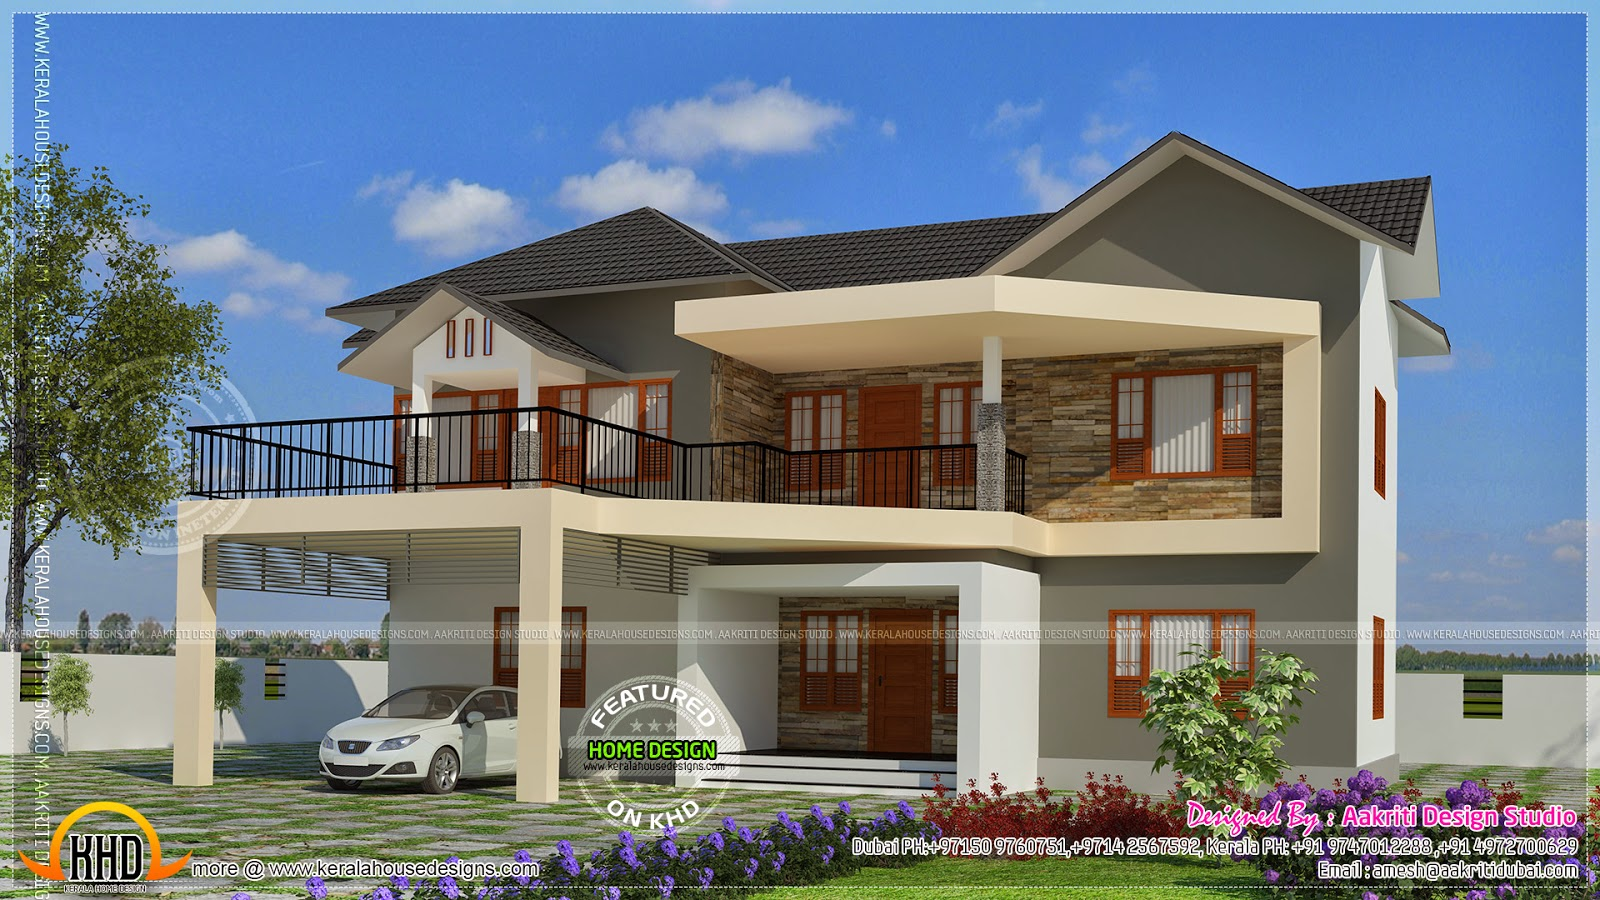 Elegant villa exterior kerala home design and floor plans for Kerala style villa plans